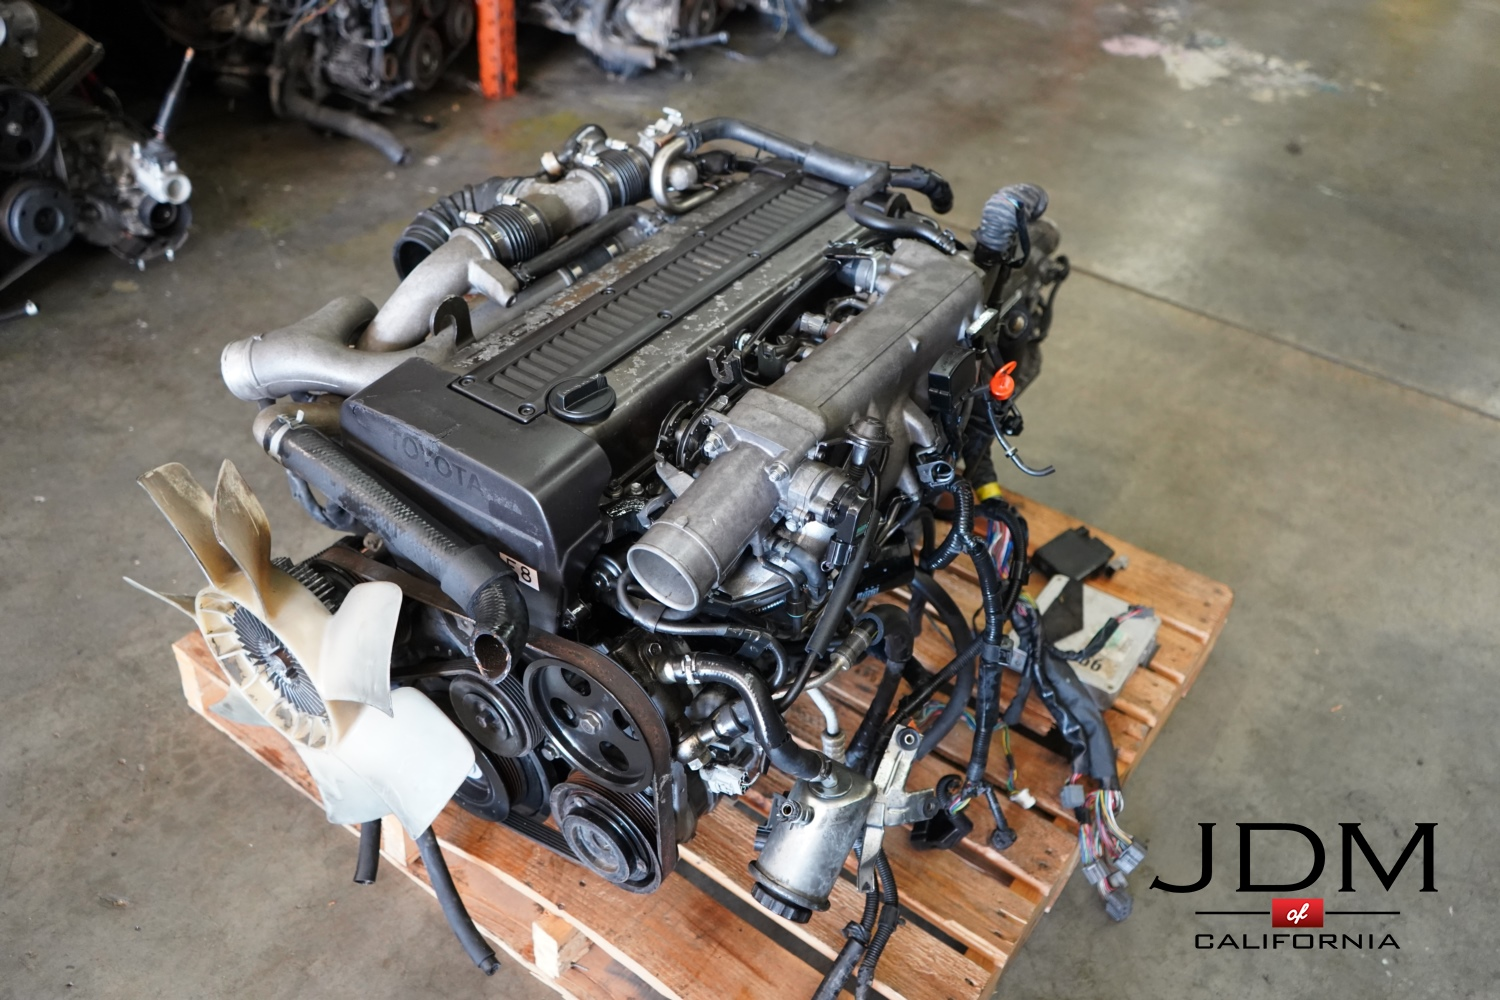 JDM 1JZ-GTE NON VVTi REAR SUMP WITH AUTOMATIC TRANSMISSION